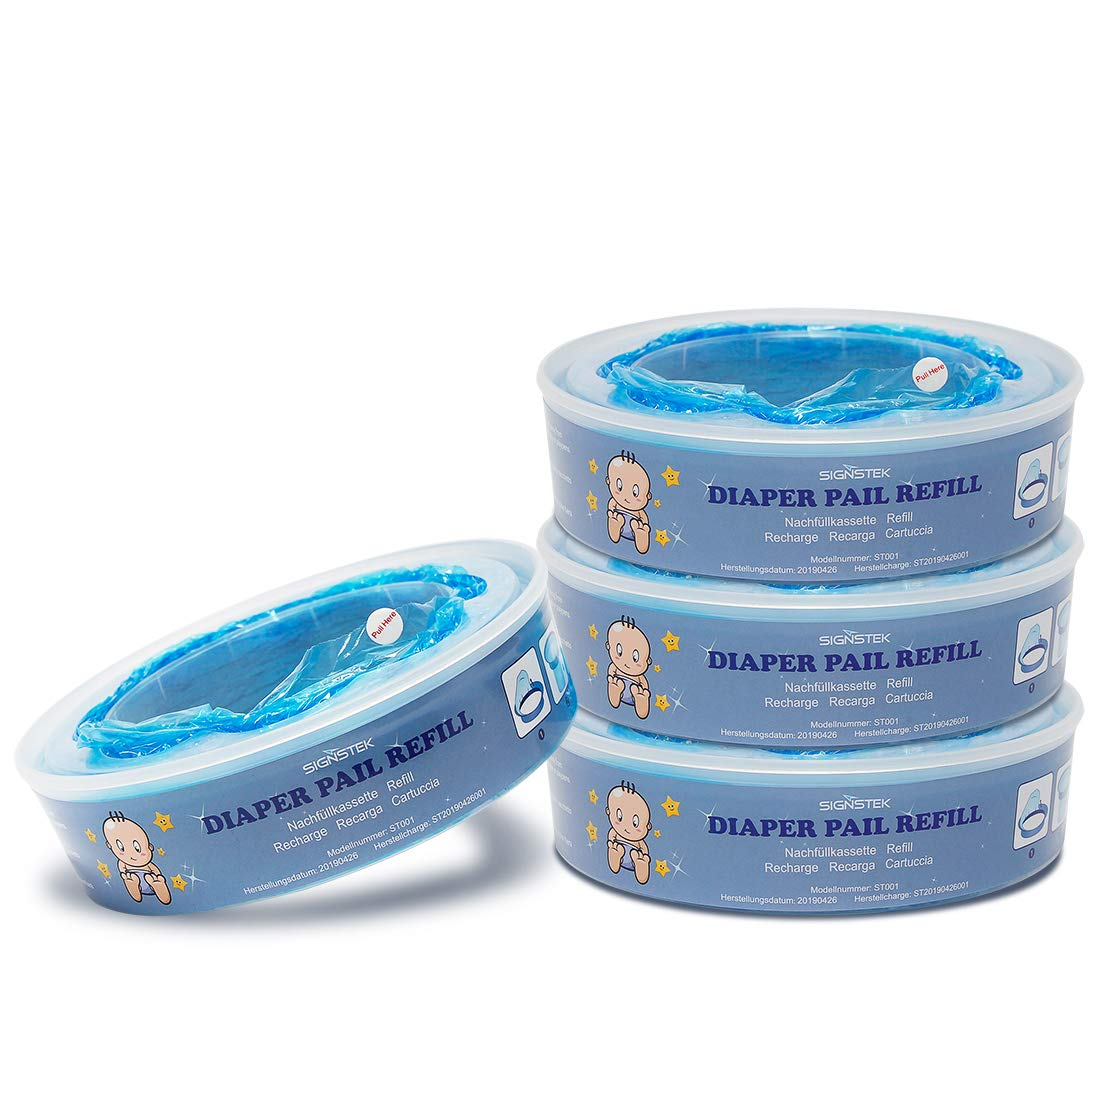 Signstek Diaper Pail Refills Compatible with Diaper Genie Pails,1080 Count,4-Pack by Signstek